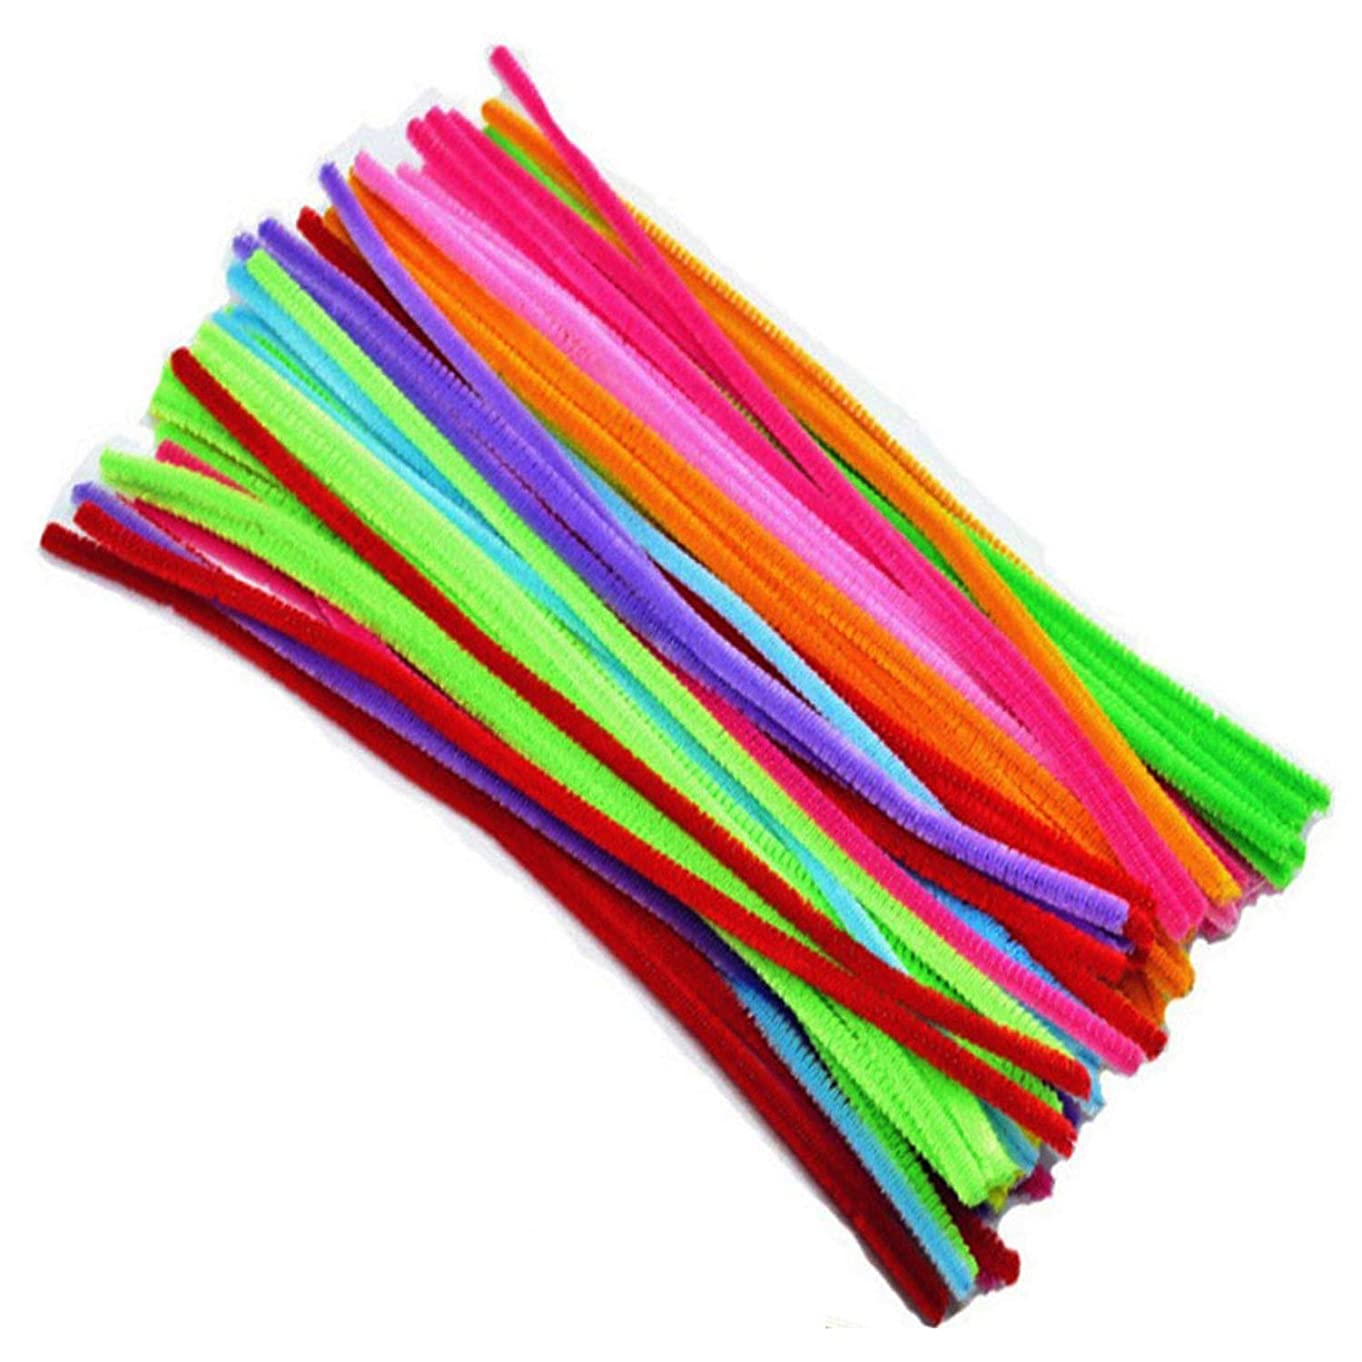 Axe Sickle 300PCS Pipe Cleaners Chenille Stems for DIY Art Craft Decorations 10 Colors (6 mm x 12 inch)